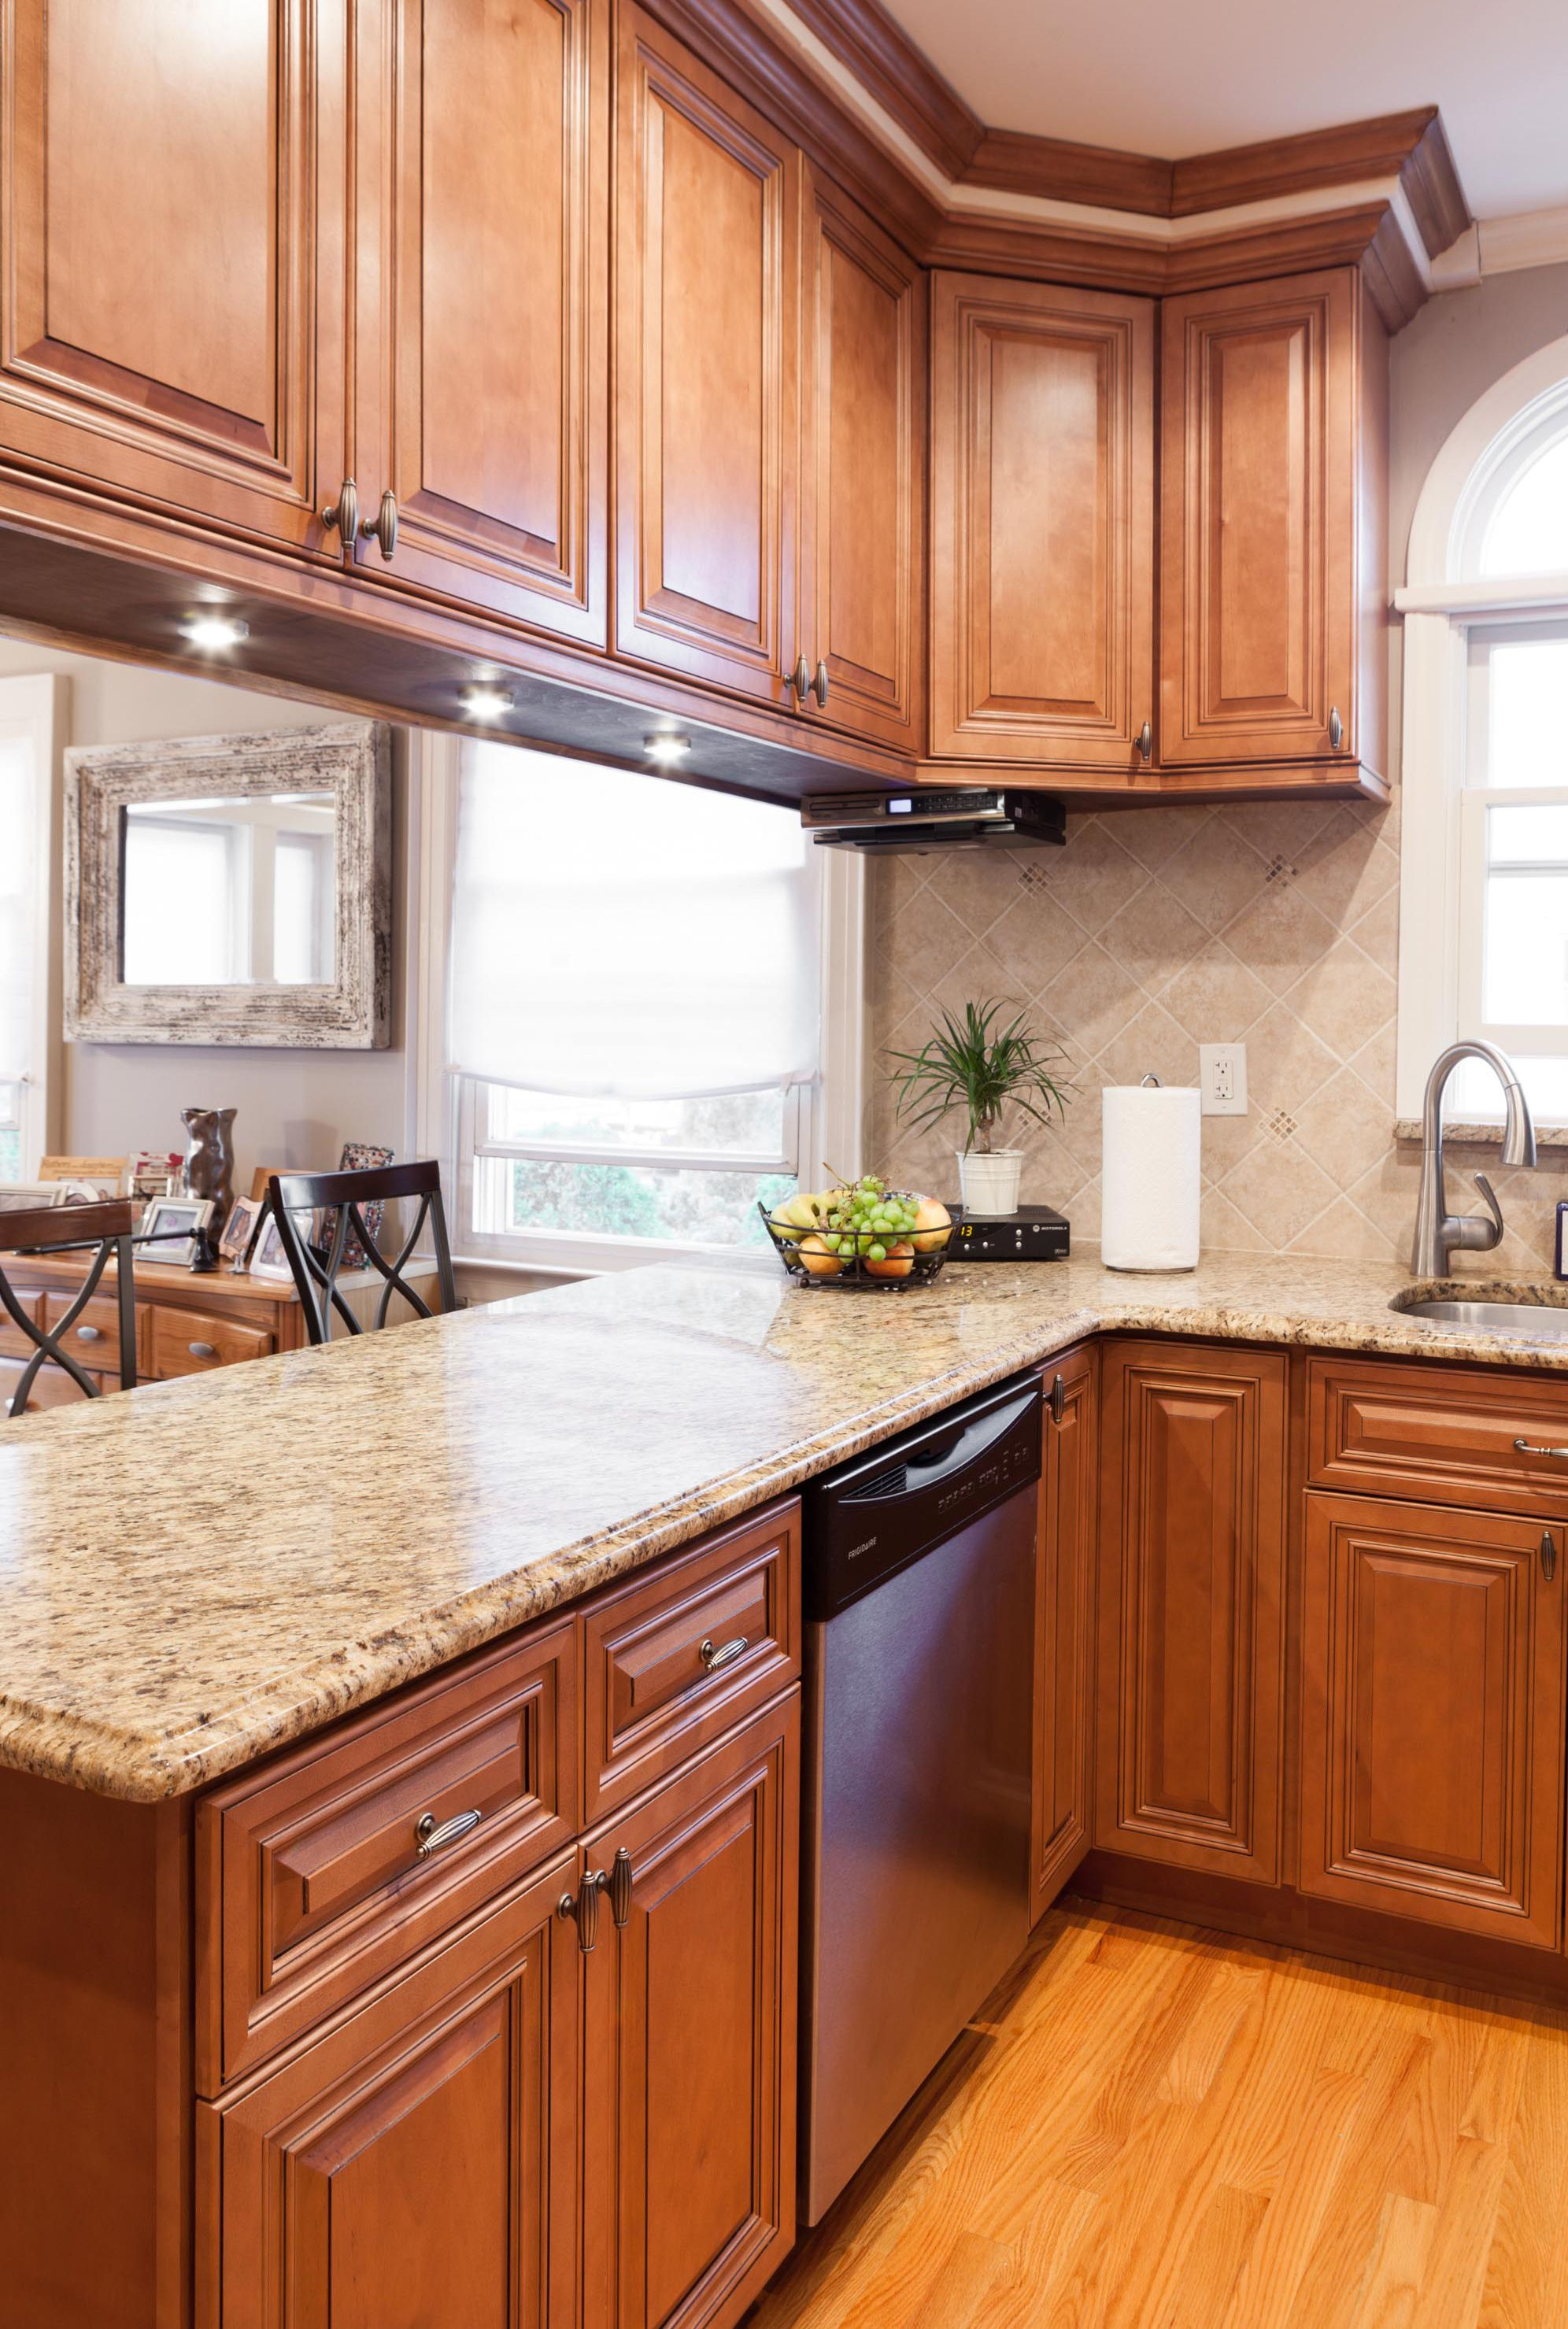 j k traditional maple wood cabinets in cinnamon glaze style co66 j k traditional cabinets on j kitchen id=68762